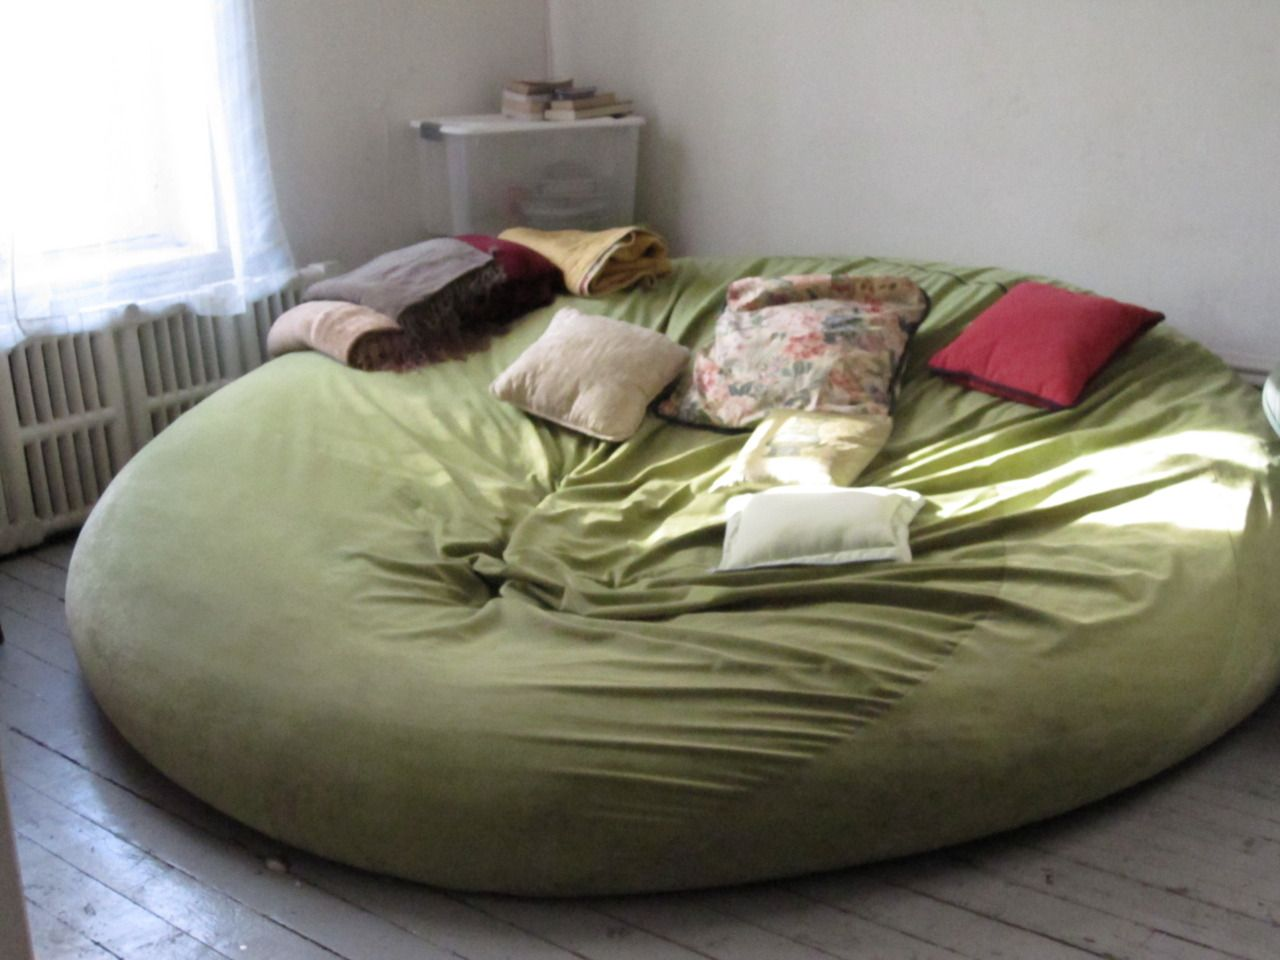 Funny Bean Bag Chairs | Biggest bean bag chair bed I've ever seen in - Funny Bean Bag Chairs Biggest Bean Bag Chair Bed I've Ever Seen